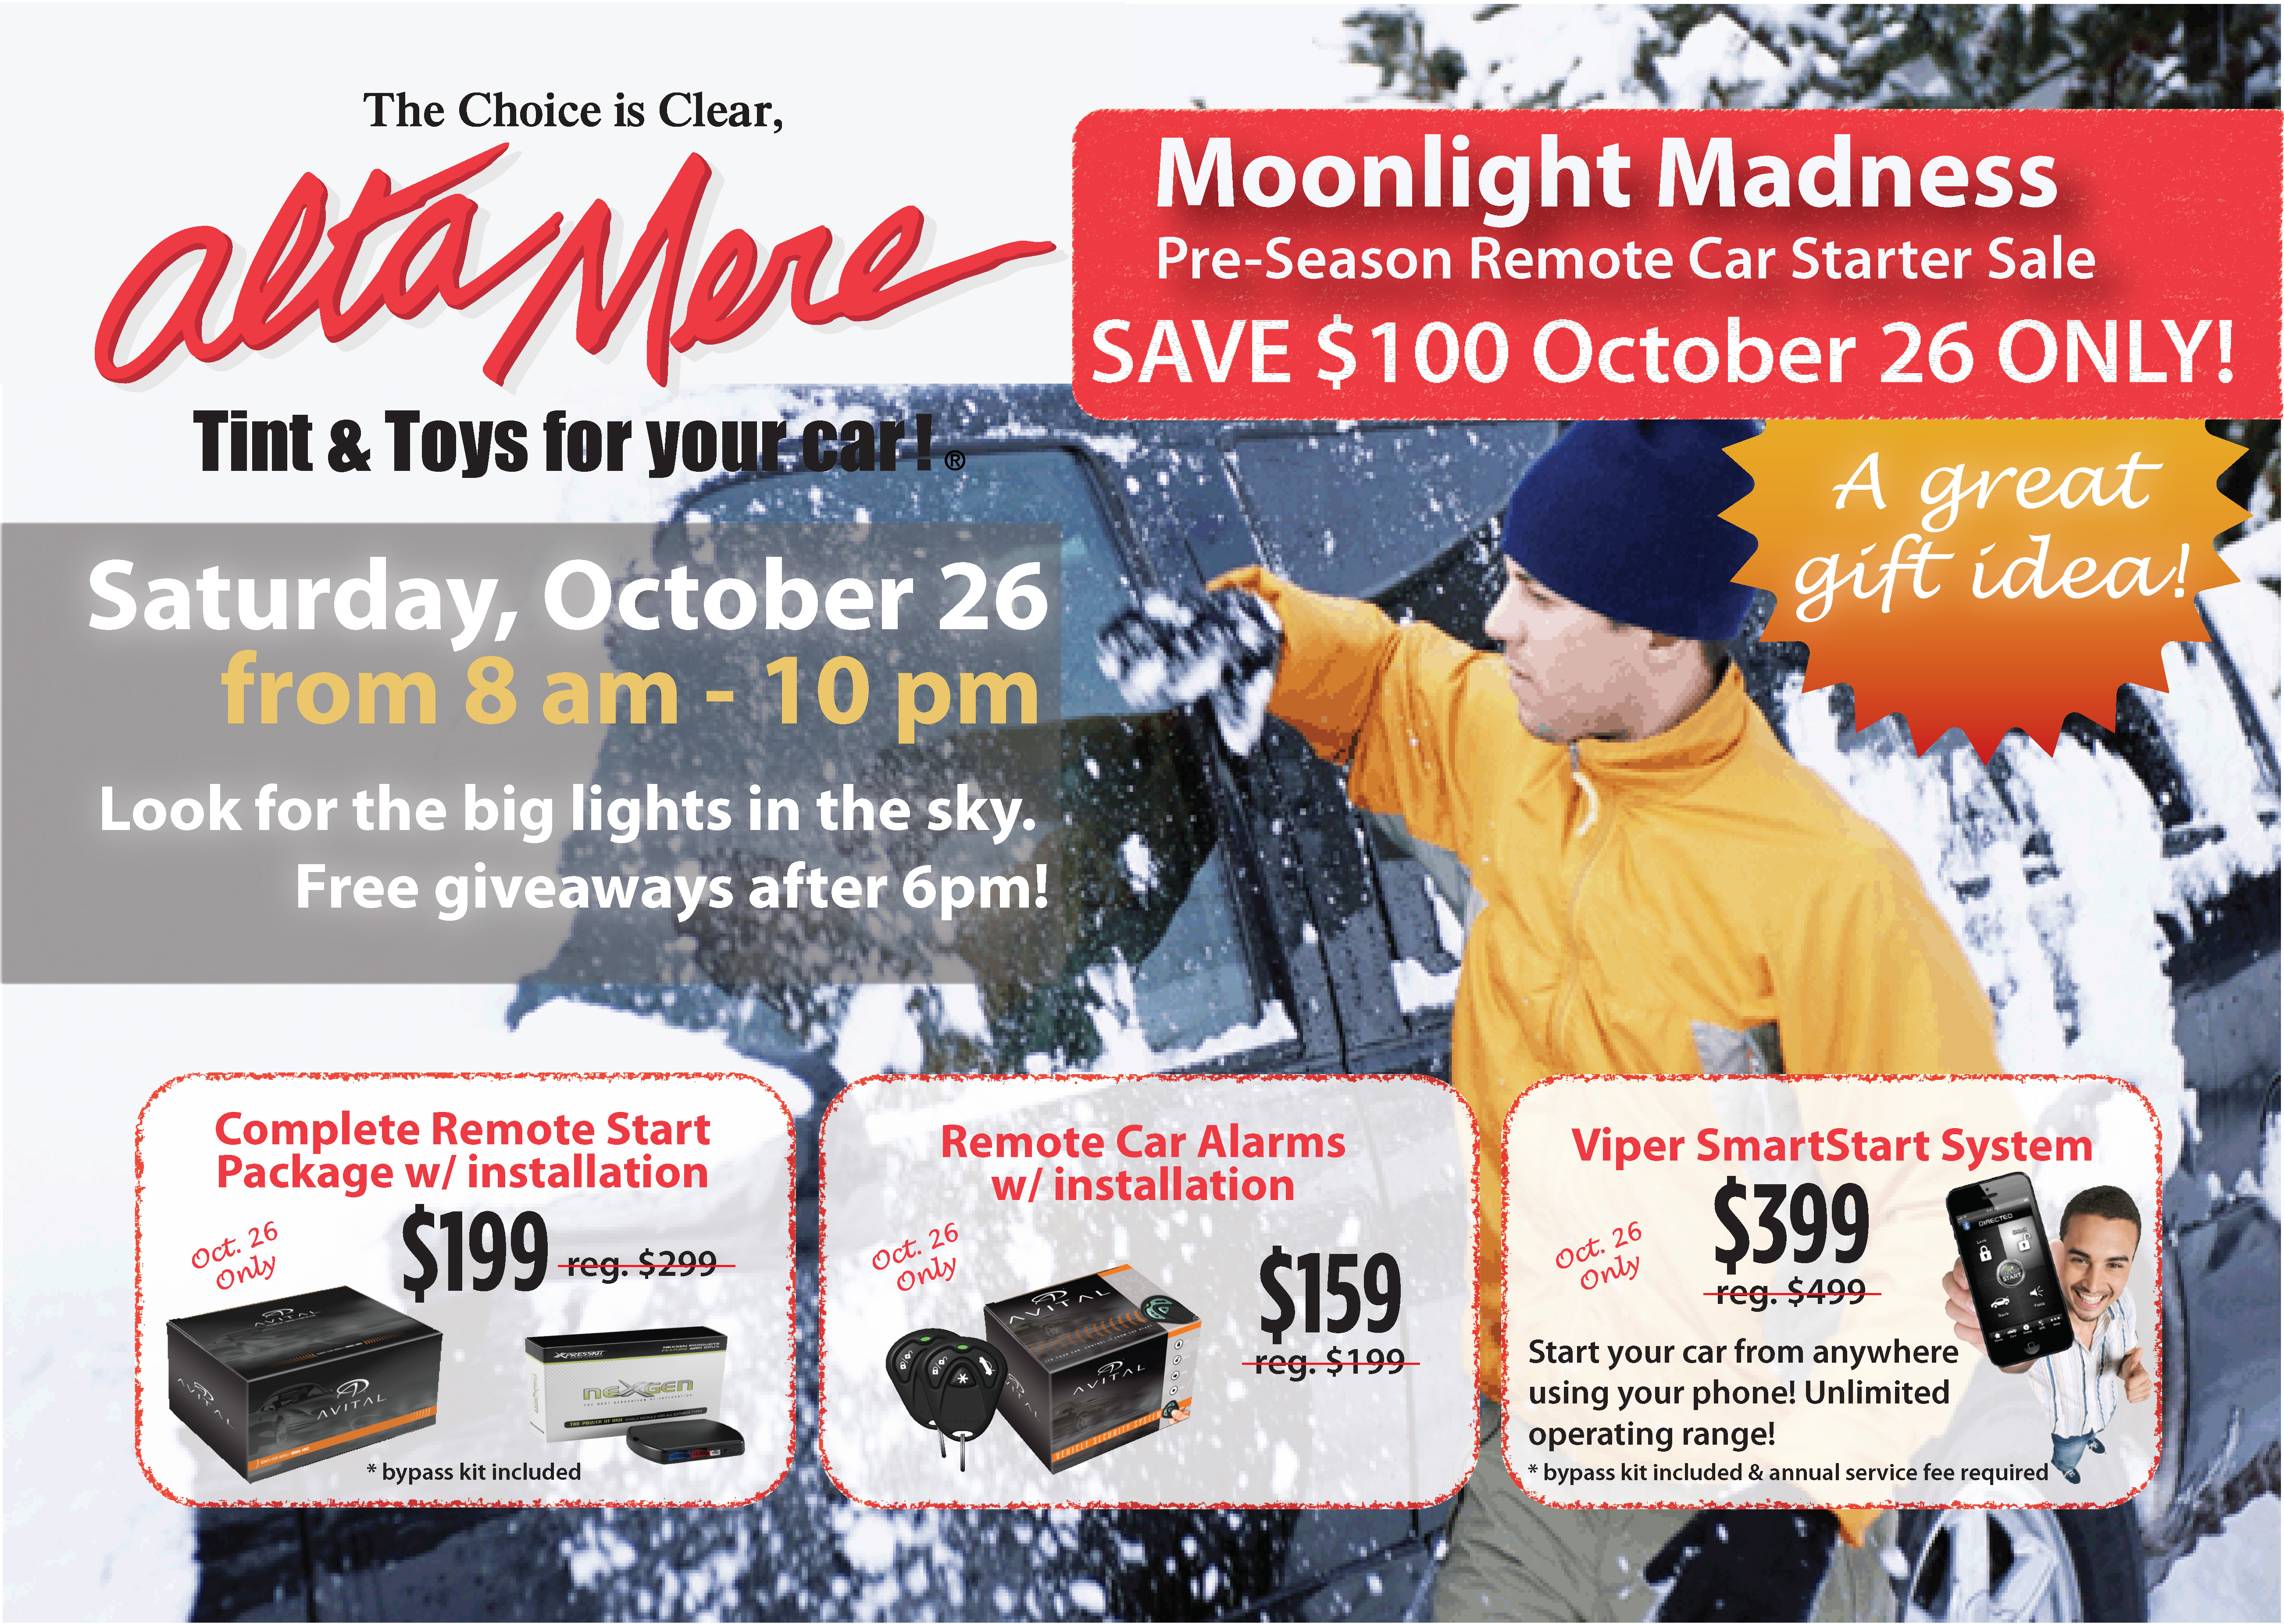 101113Moonlight Madness Direct Mail_6x9_final.OK004